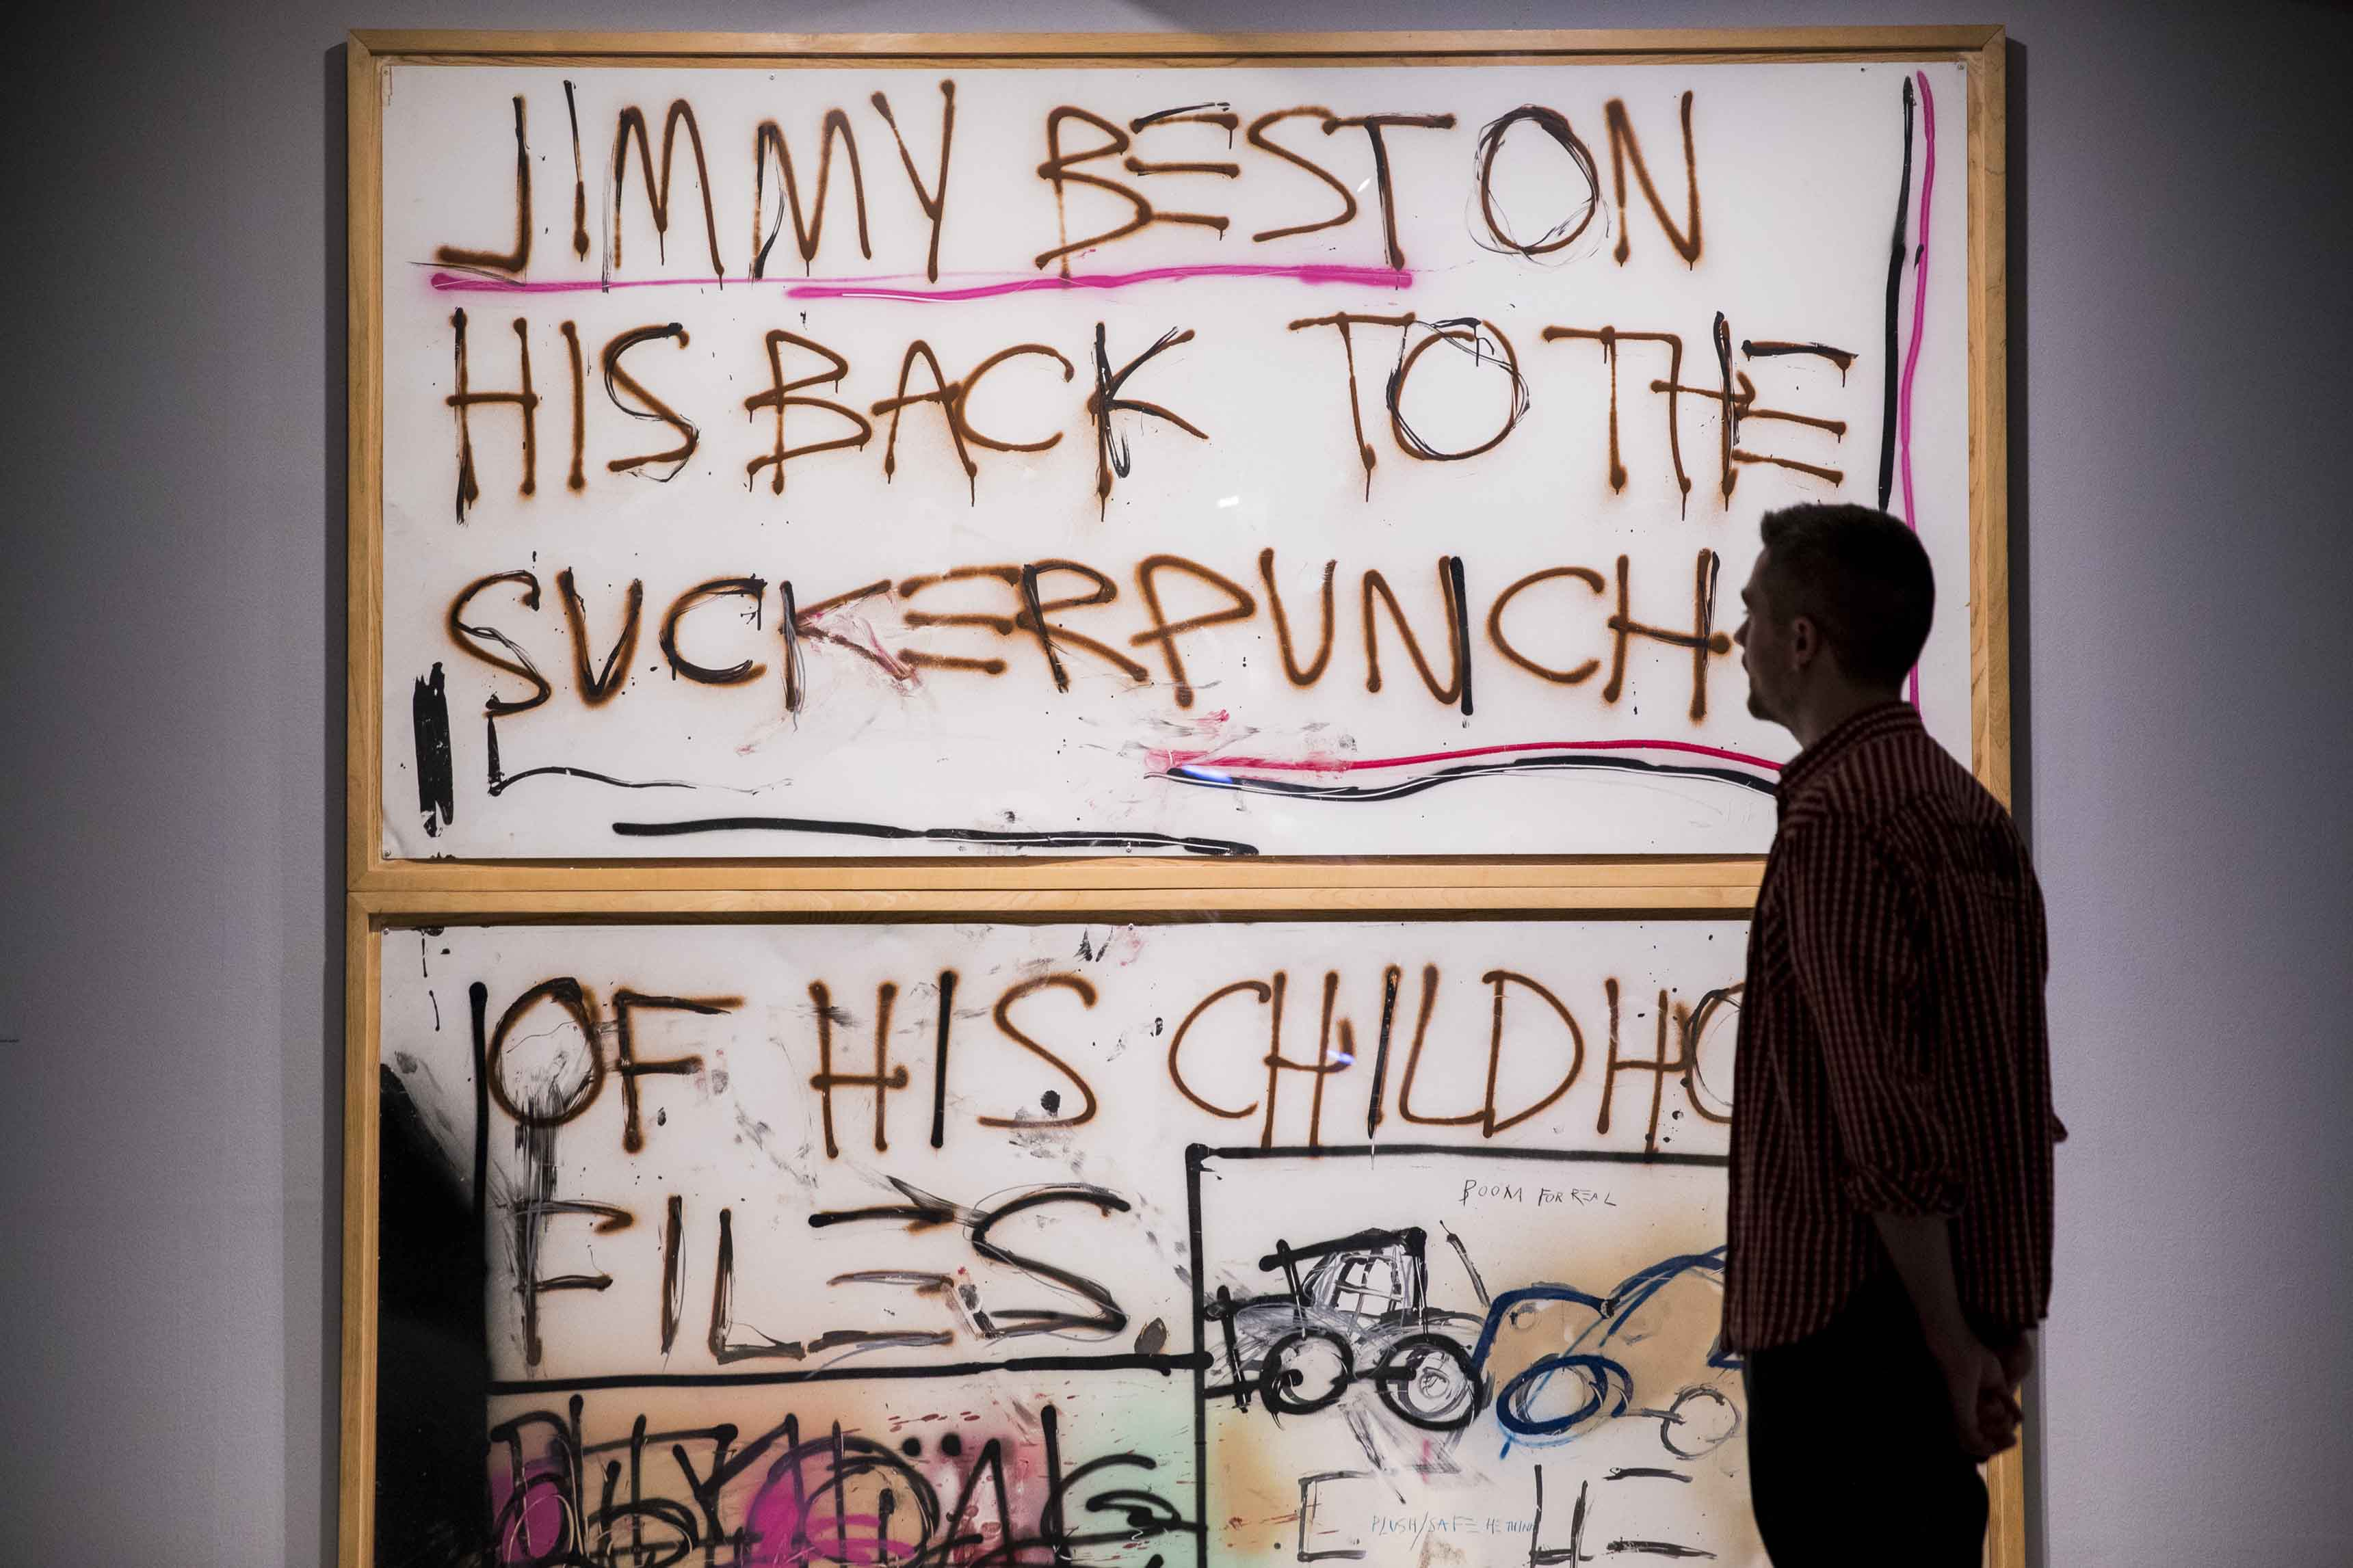 Basquiat: Boom For Real Installation view Barbican Art Gallery 21 September 2017 – 28 January 2018 © Tristan Fewings / Getty Images Artwork: Jean-Michel Basquiat, Jimmy Best, 1981 © The Estate of Jean-Michel Basquiat. Licensed by Artestar, New York